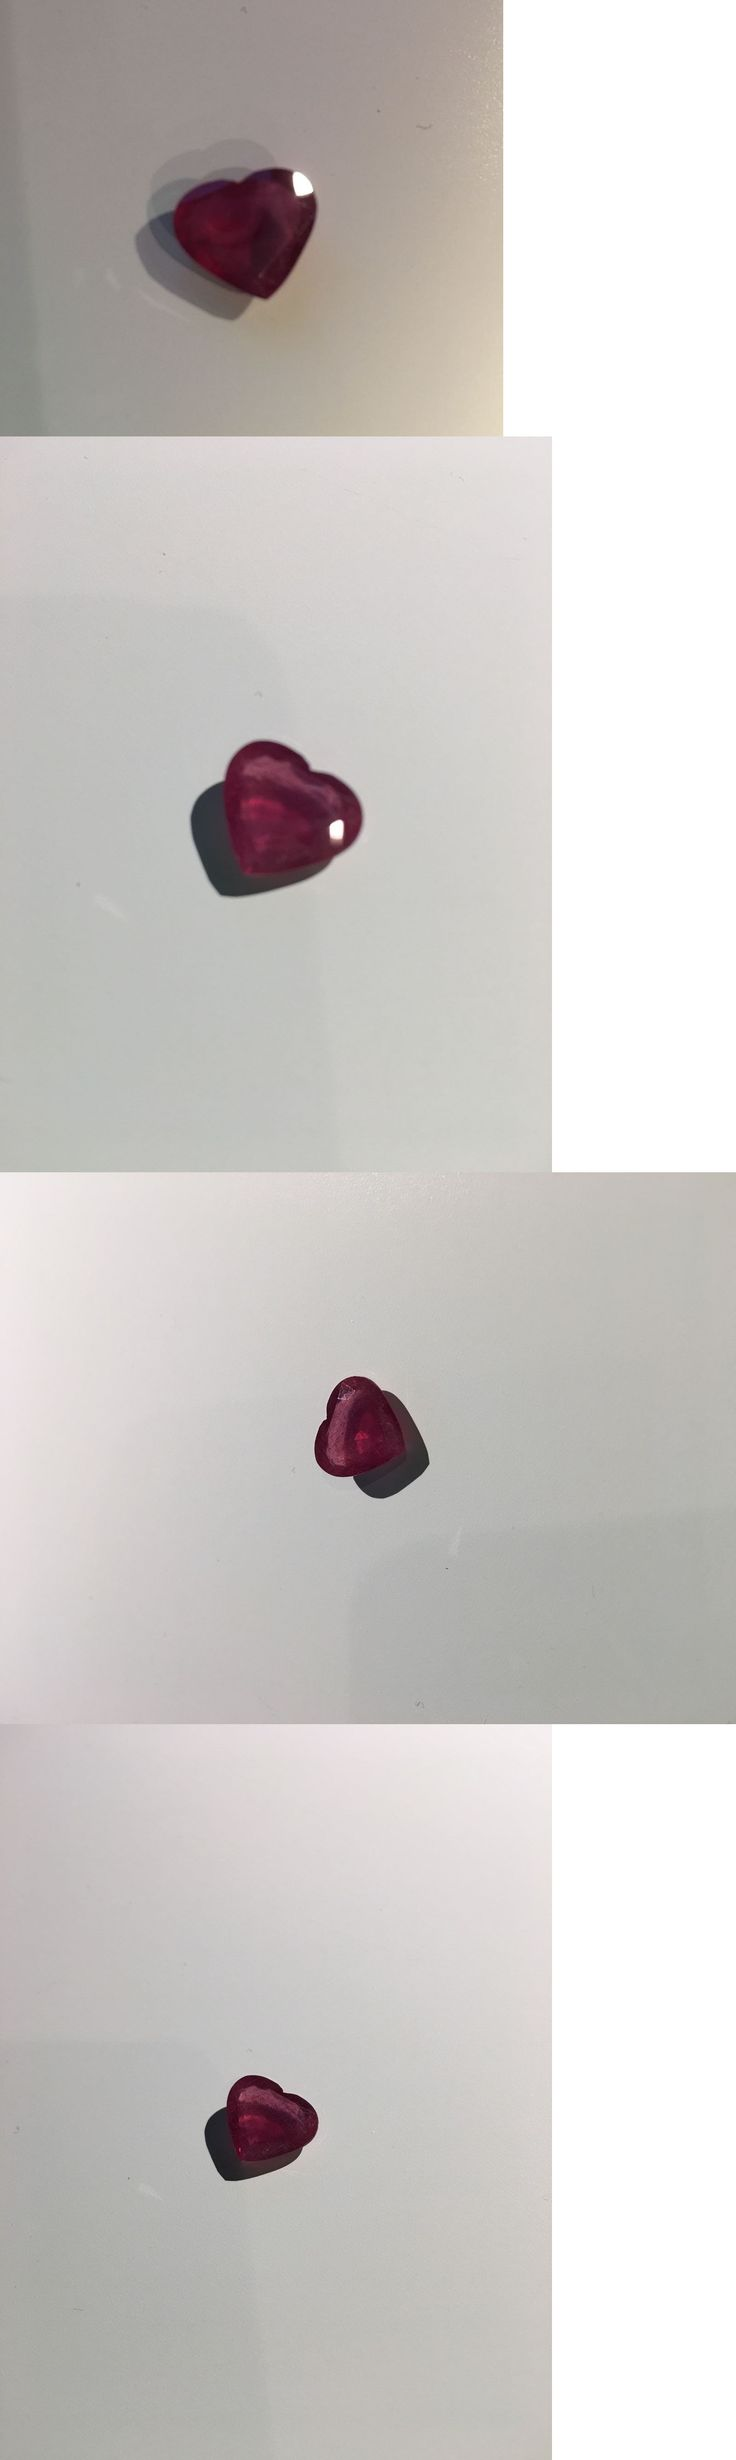 Natural Rubies 3827: Loose Heart Shaped Natural Ruby 5.34 Ct. -> BUY IT NOW ONLY: $65 on eBay!